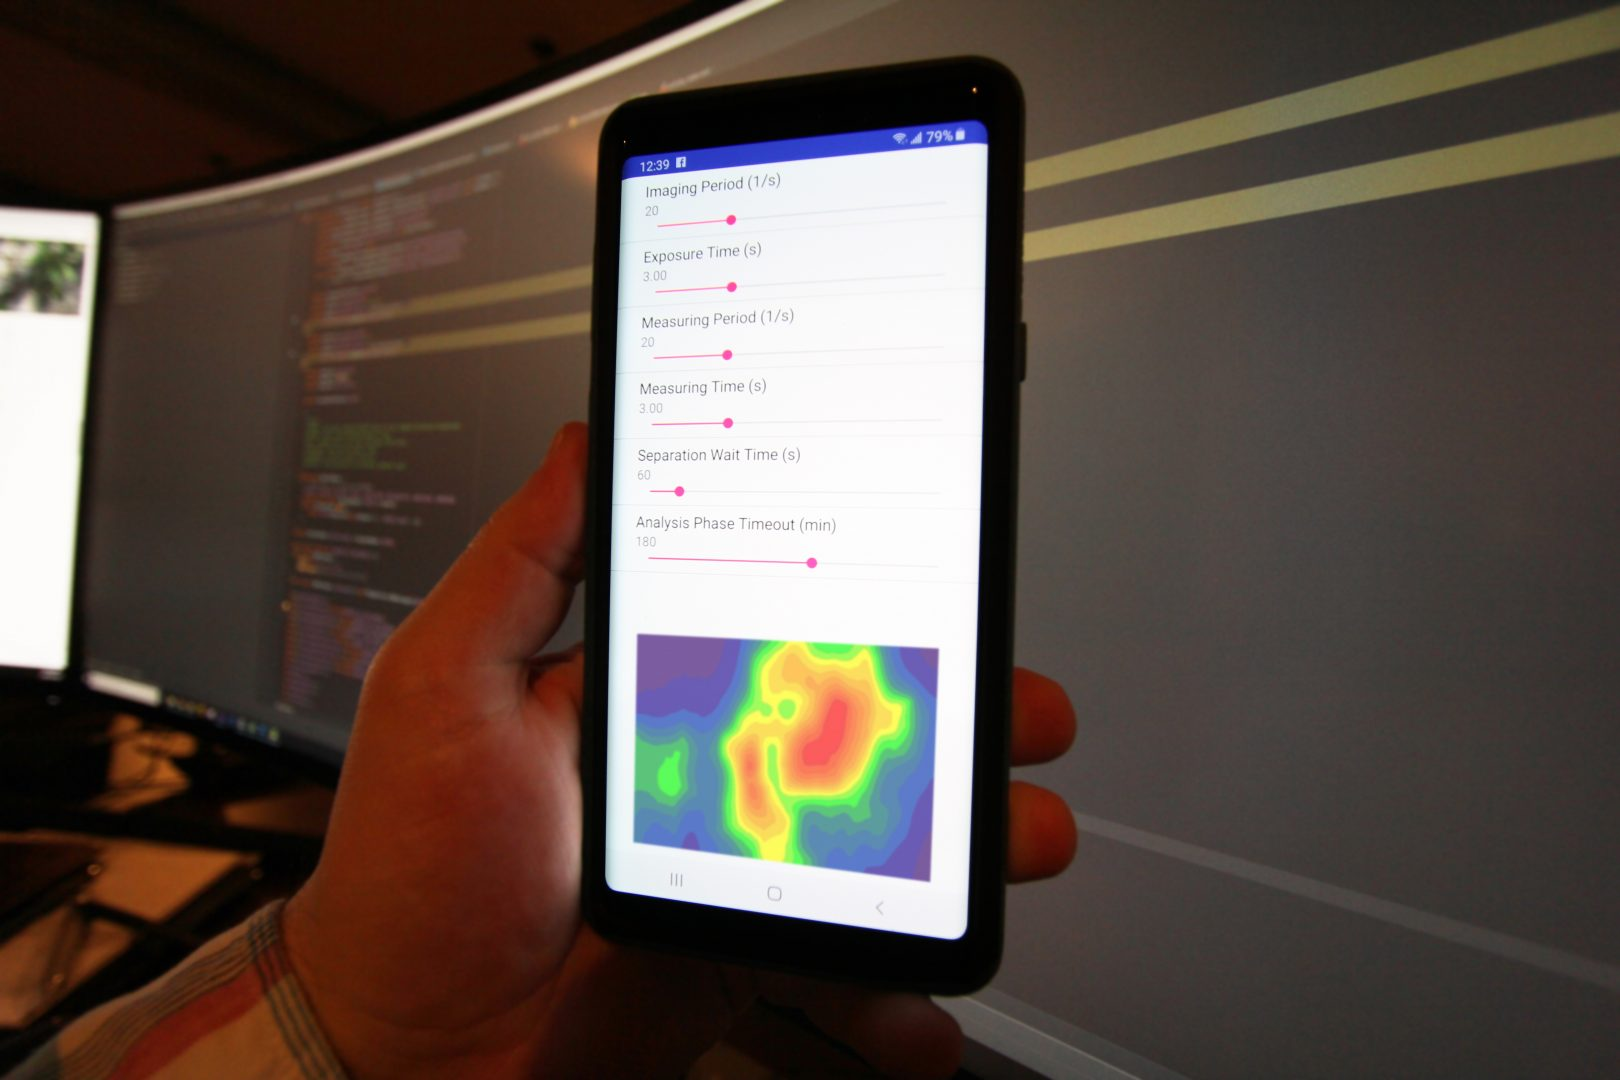 A hand holding a mobile phone with the Verv app running showing a heatmap